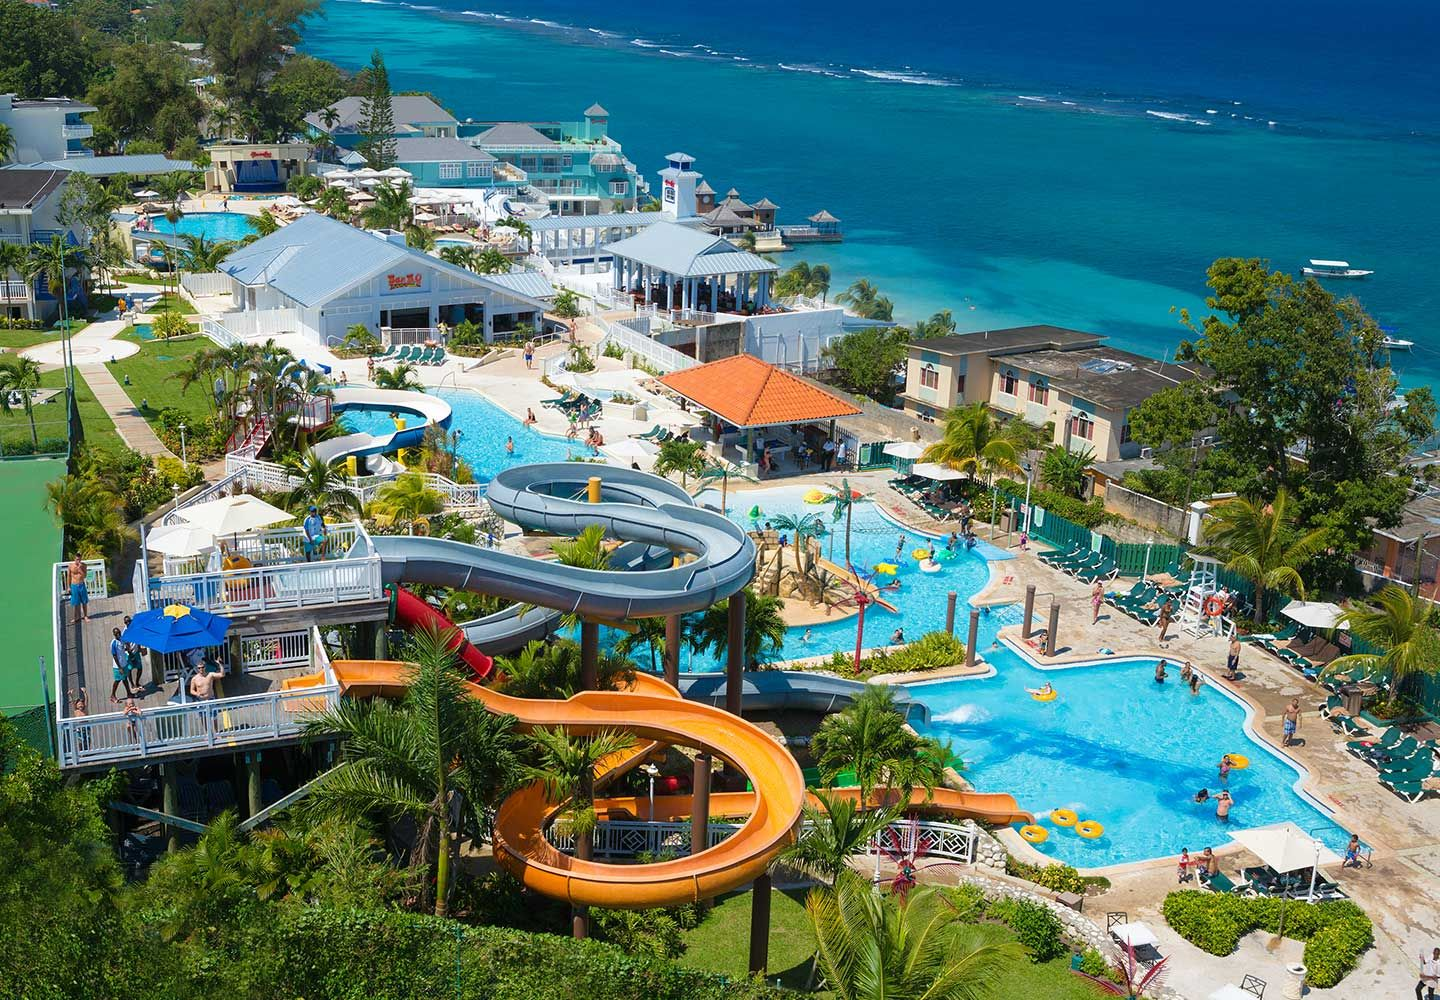 Best 25 all inclusive family resorts ideas on pinterest best family resorts best all inclusive vacations and all inclusive caribbean vacations